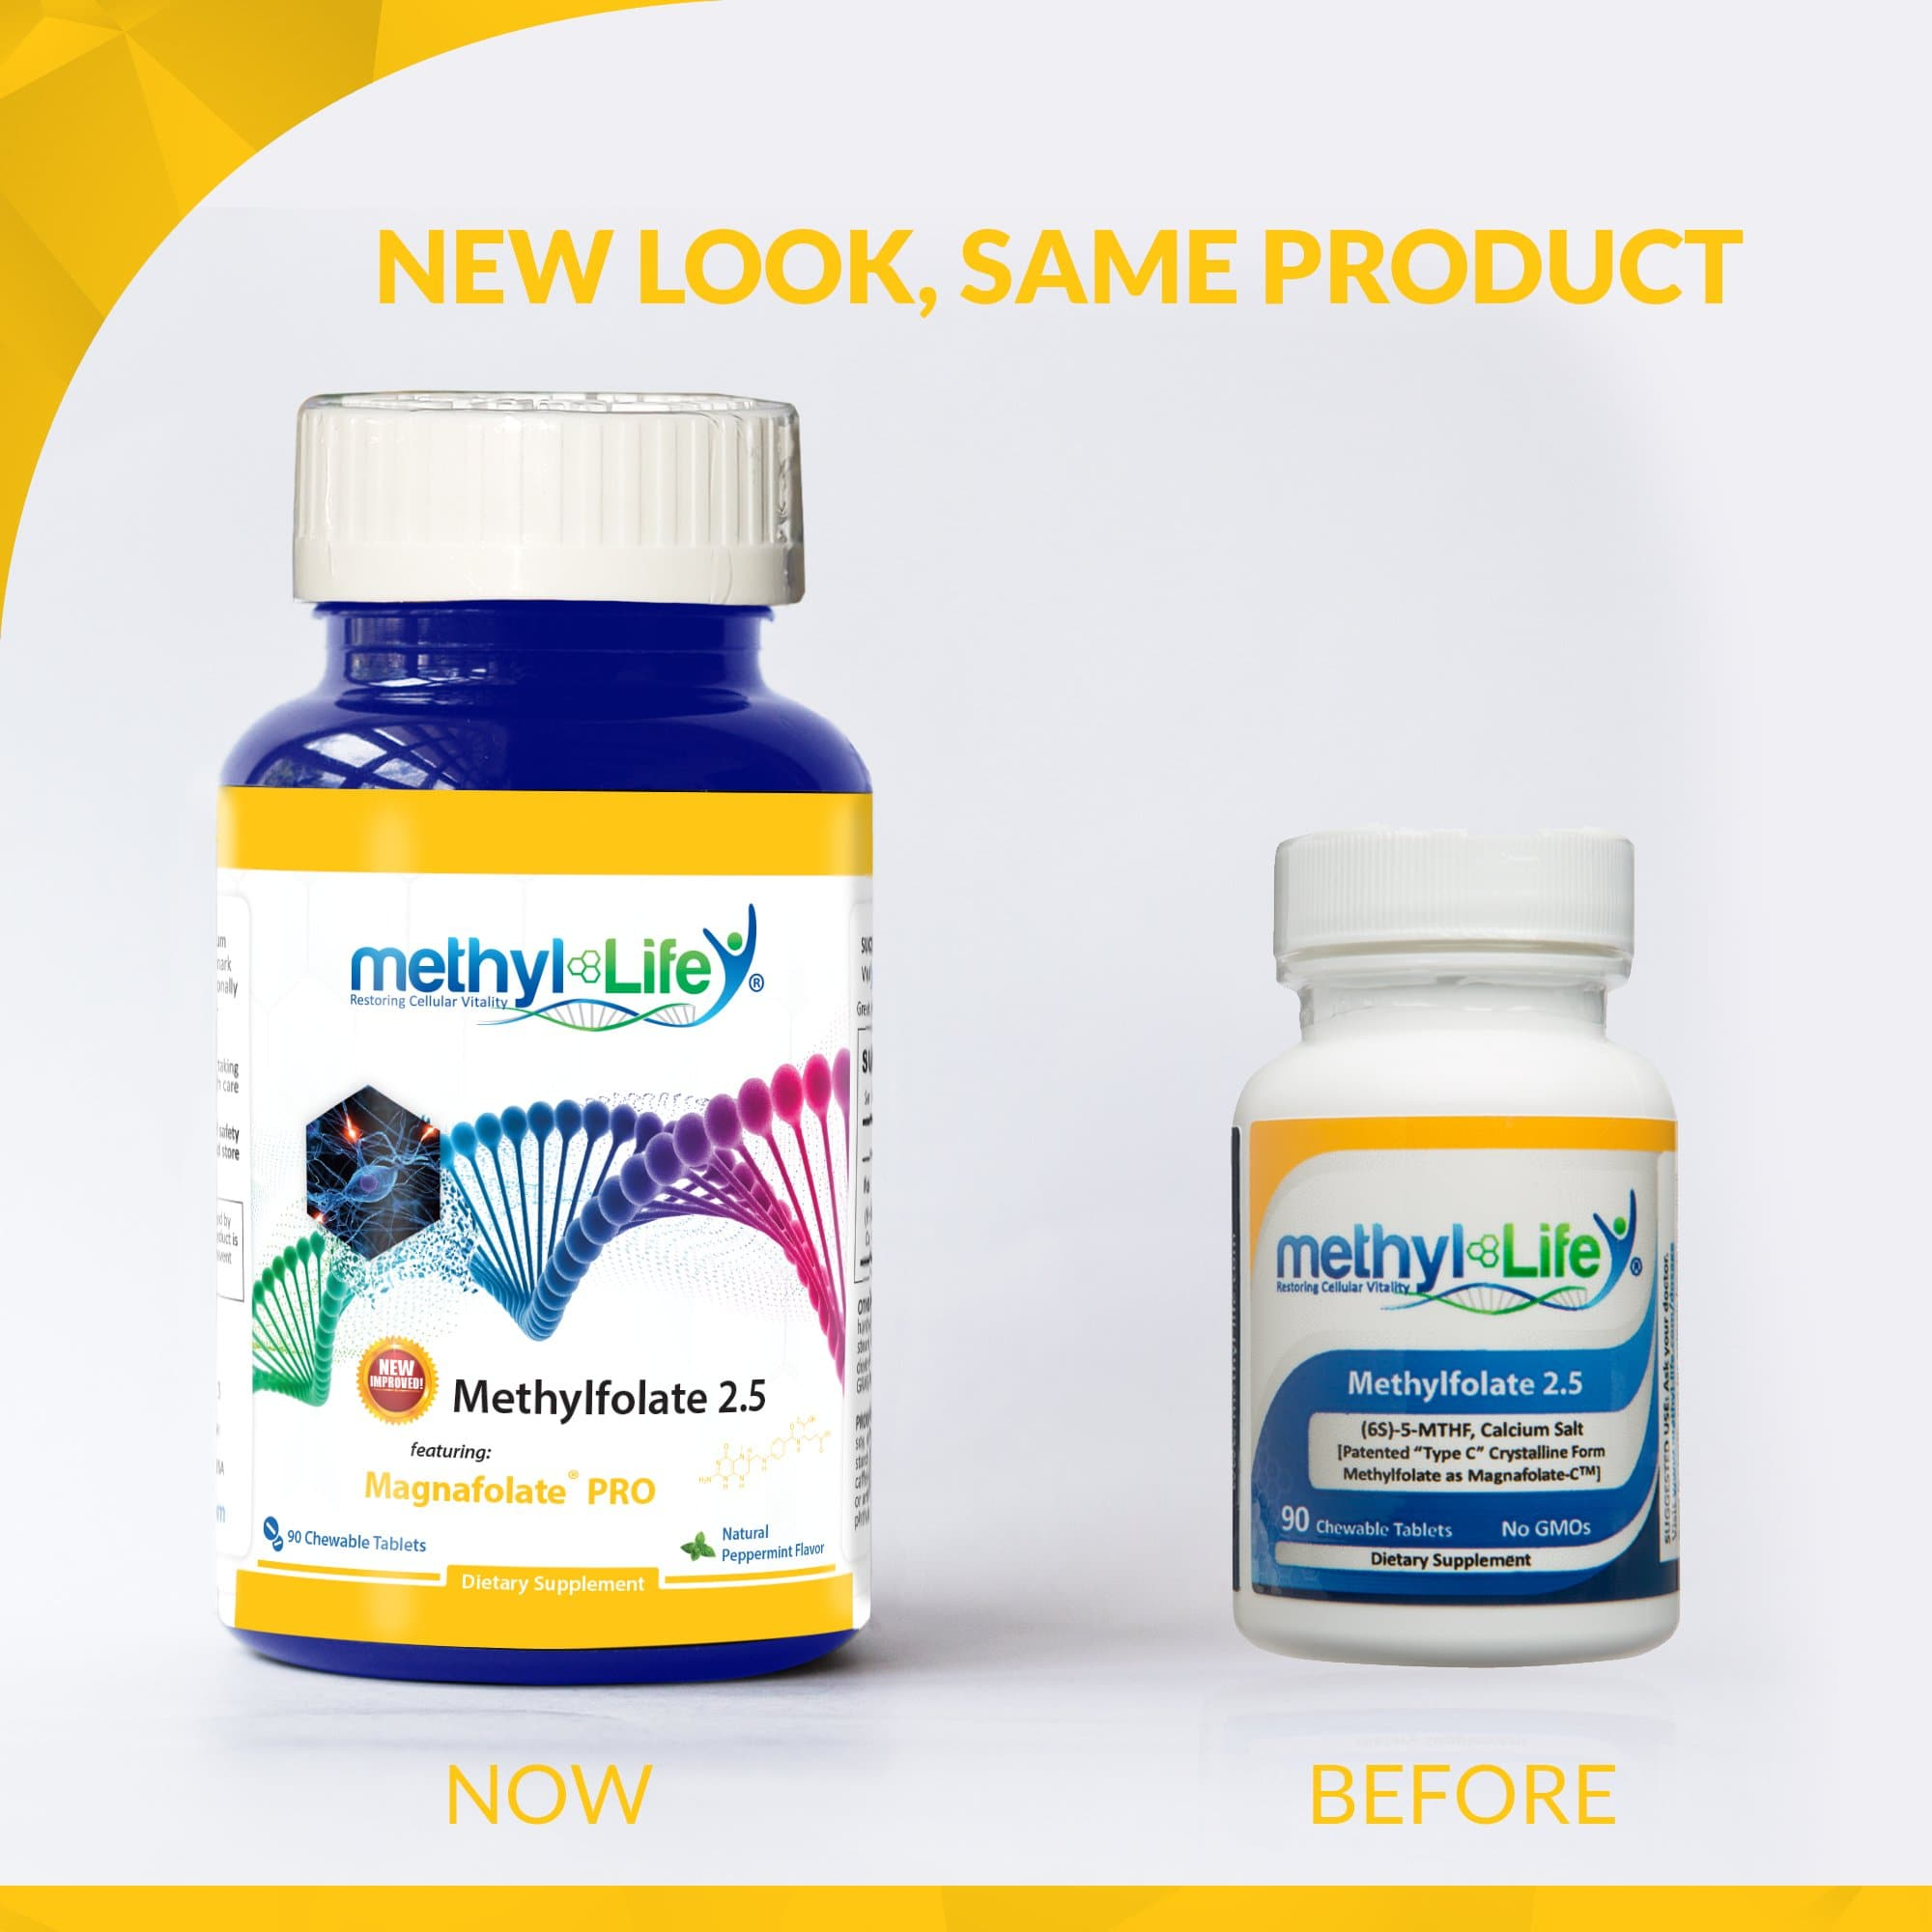 l-methylfolate 2.5 mg before and after